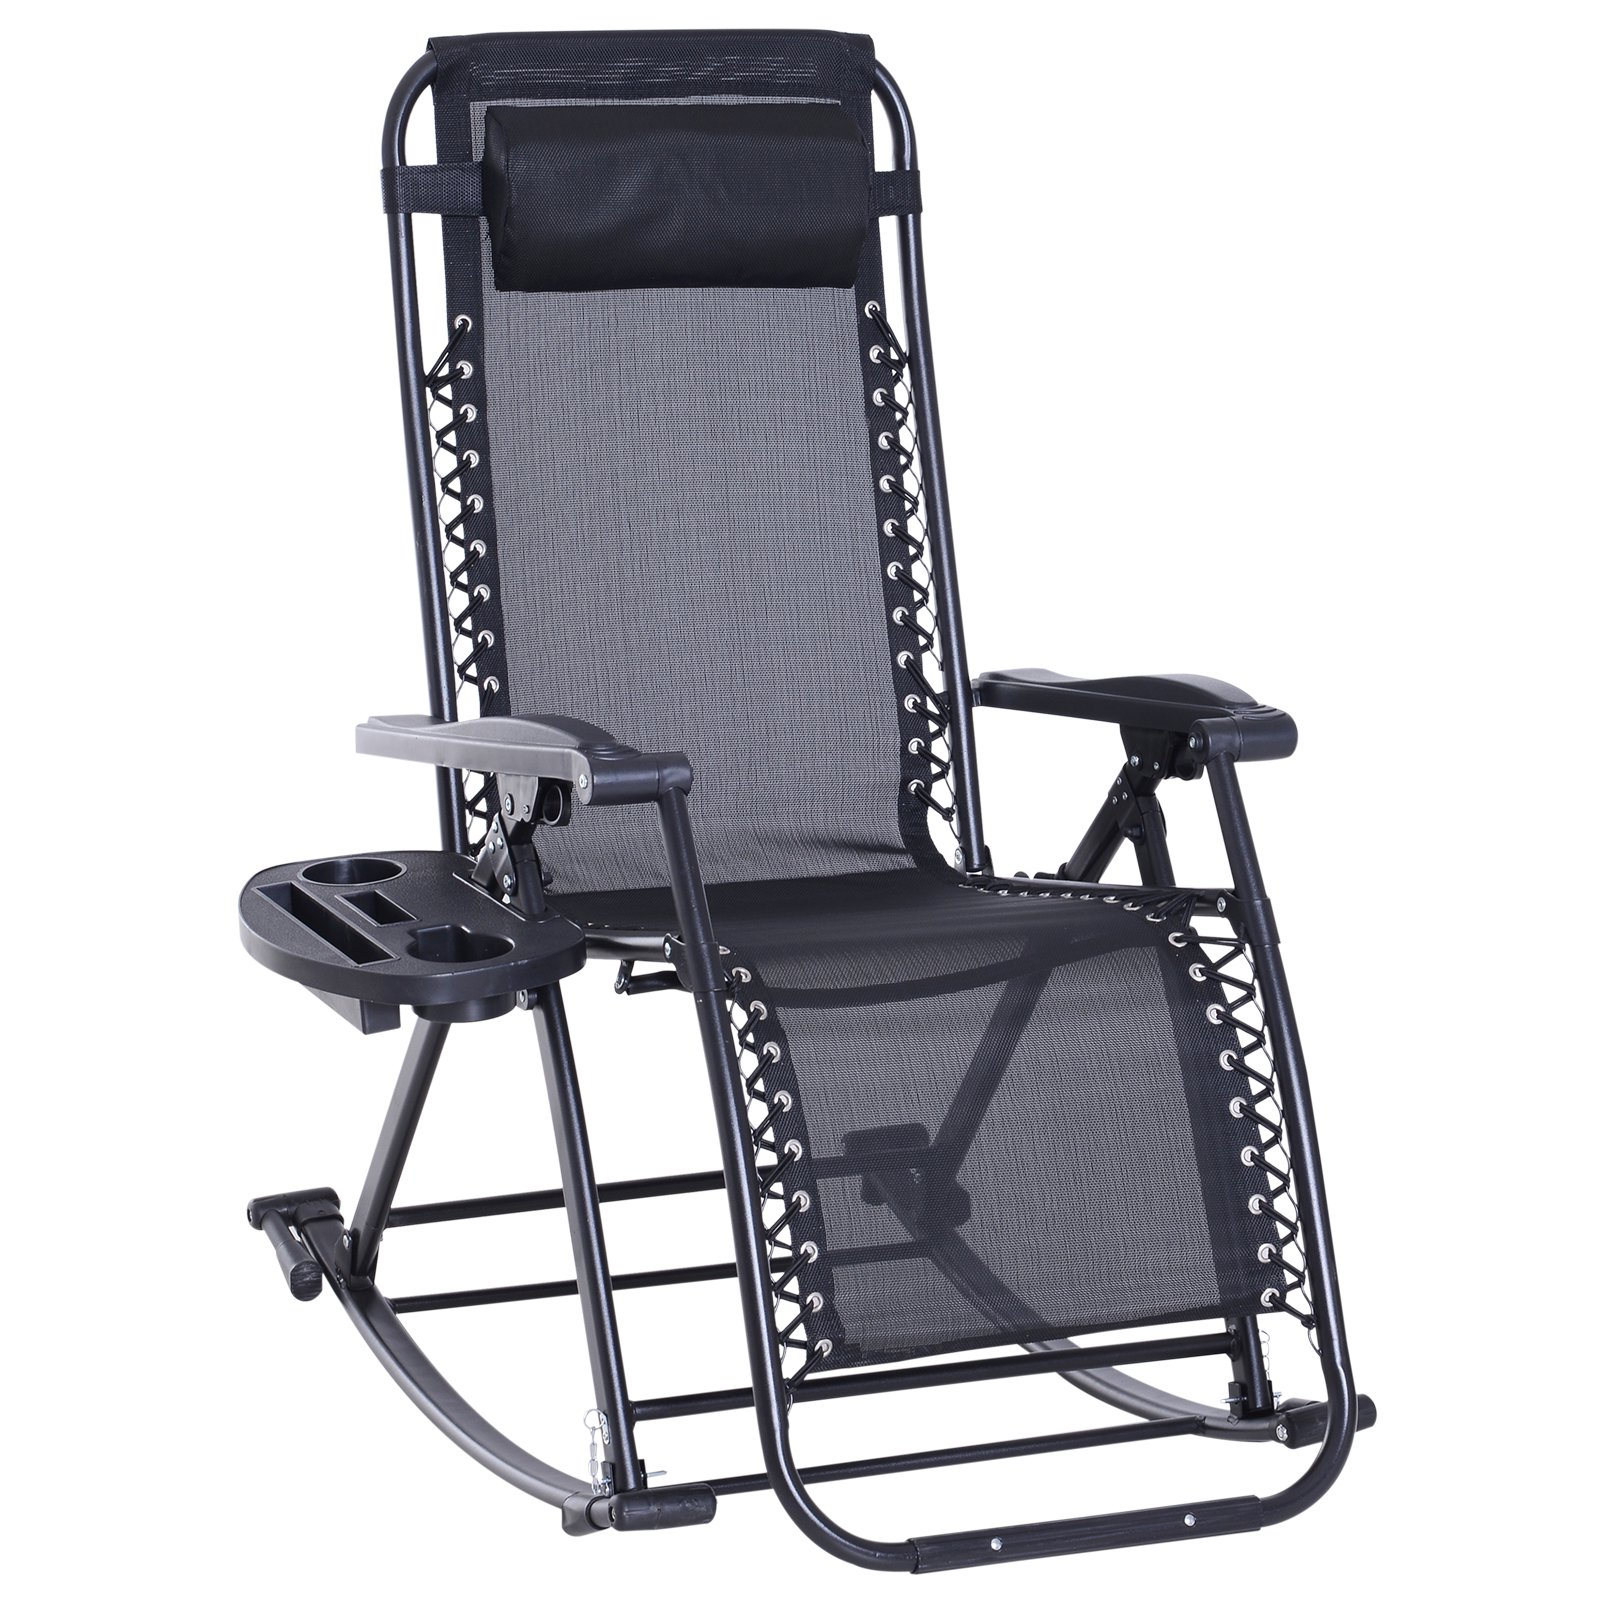 Folding Zero Gravity Rocking Lounge Chair With Cup Holder